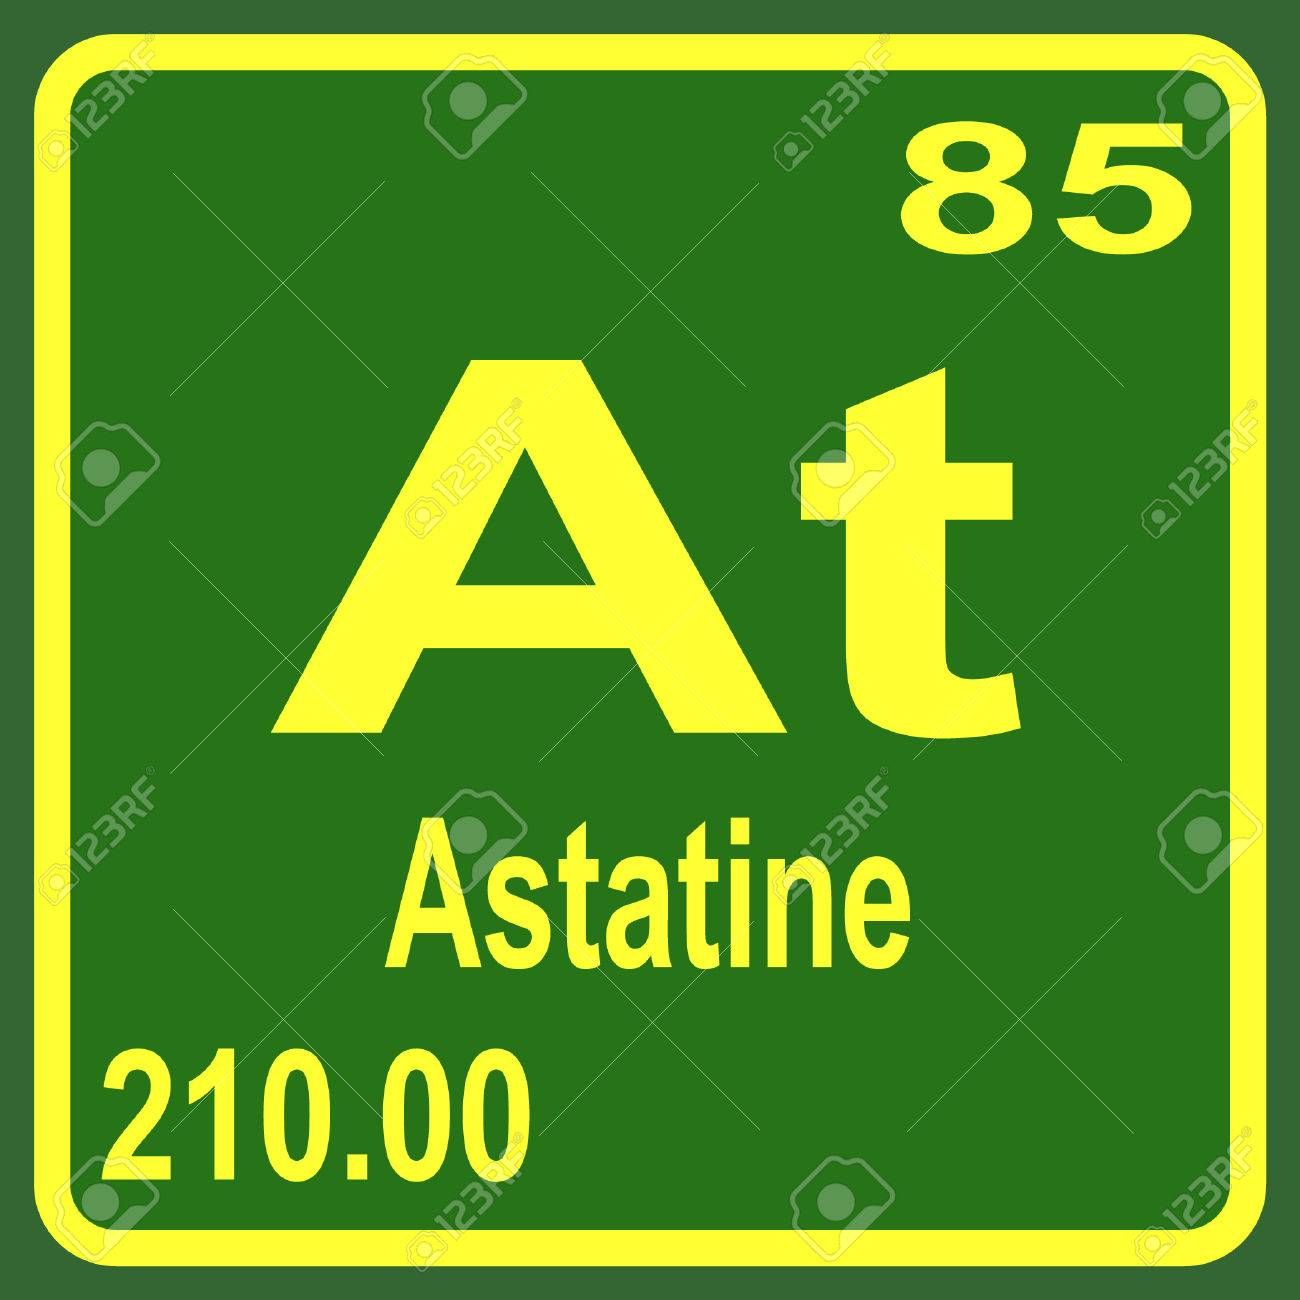 Periodic table of elements astatine royalty free cliparts vectors periodic table of elements astatine stock vector 53901555 urtaz Image collections